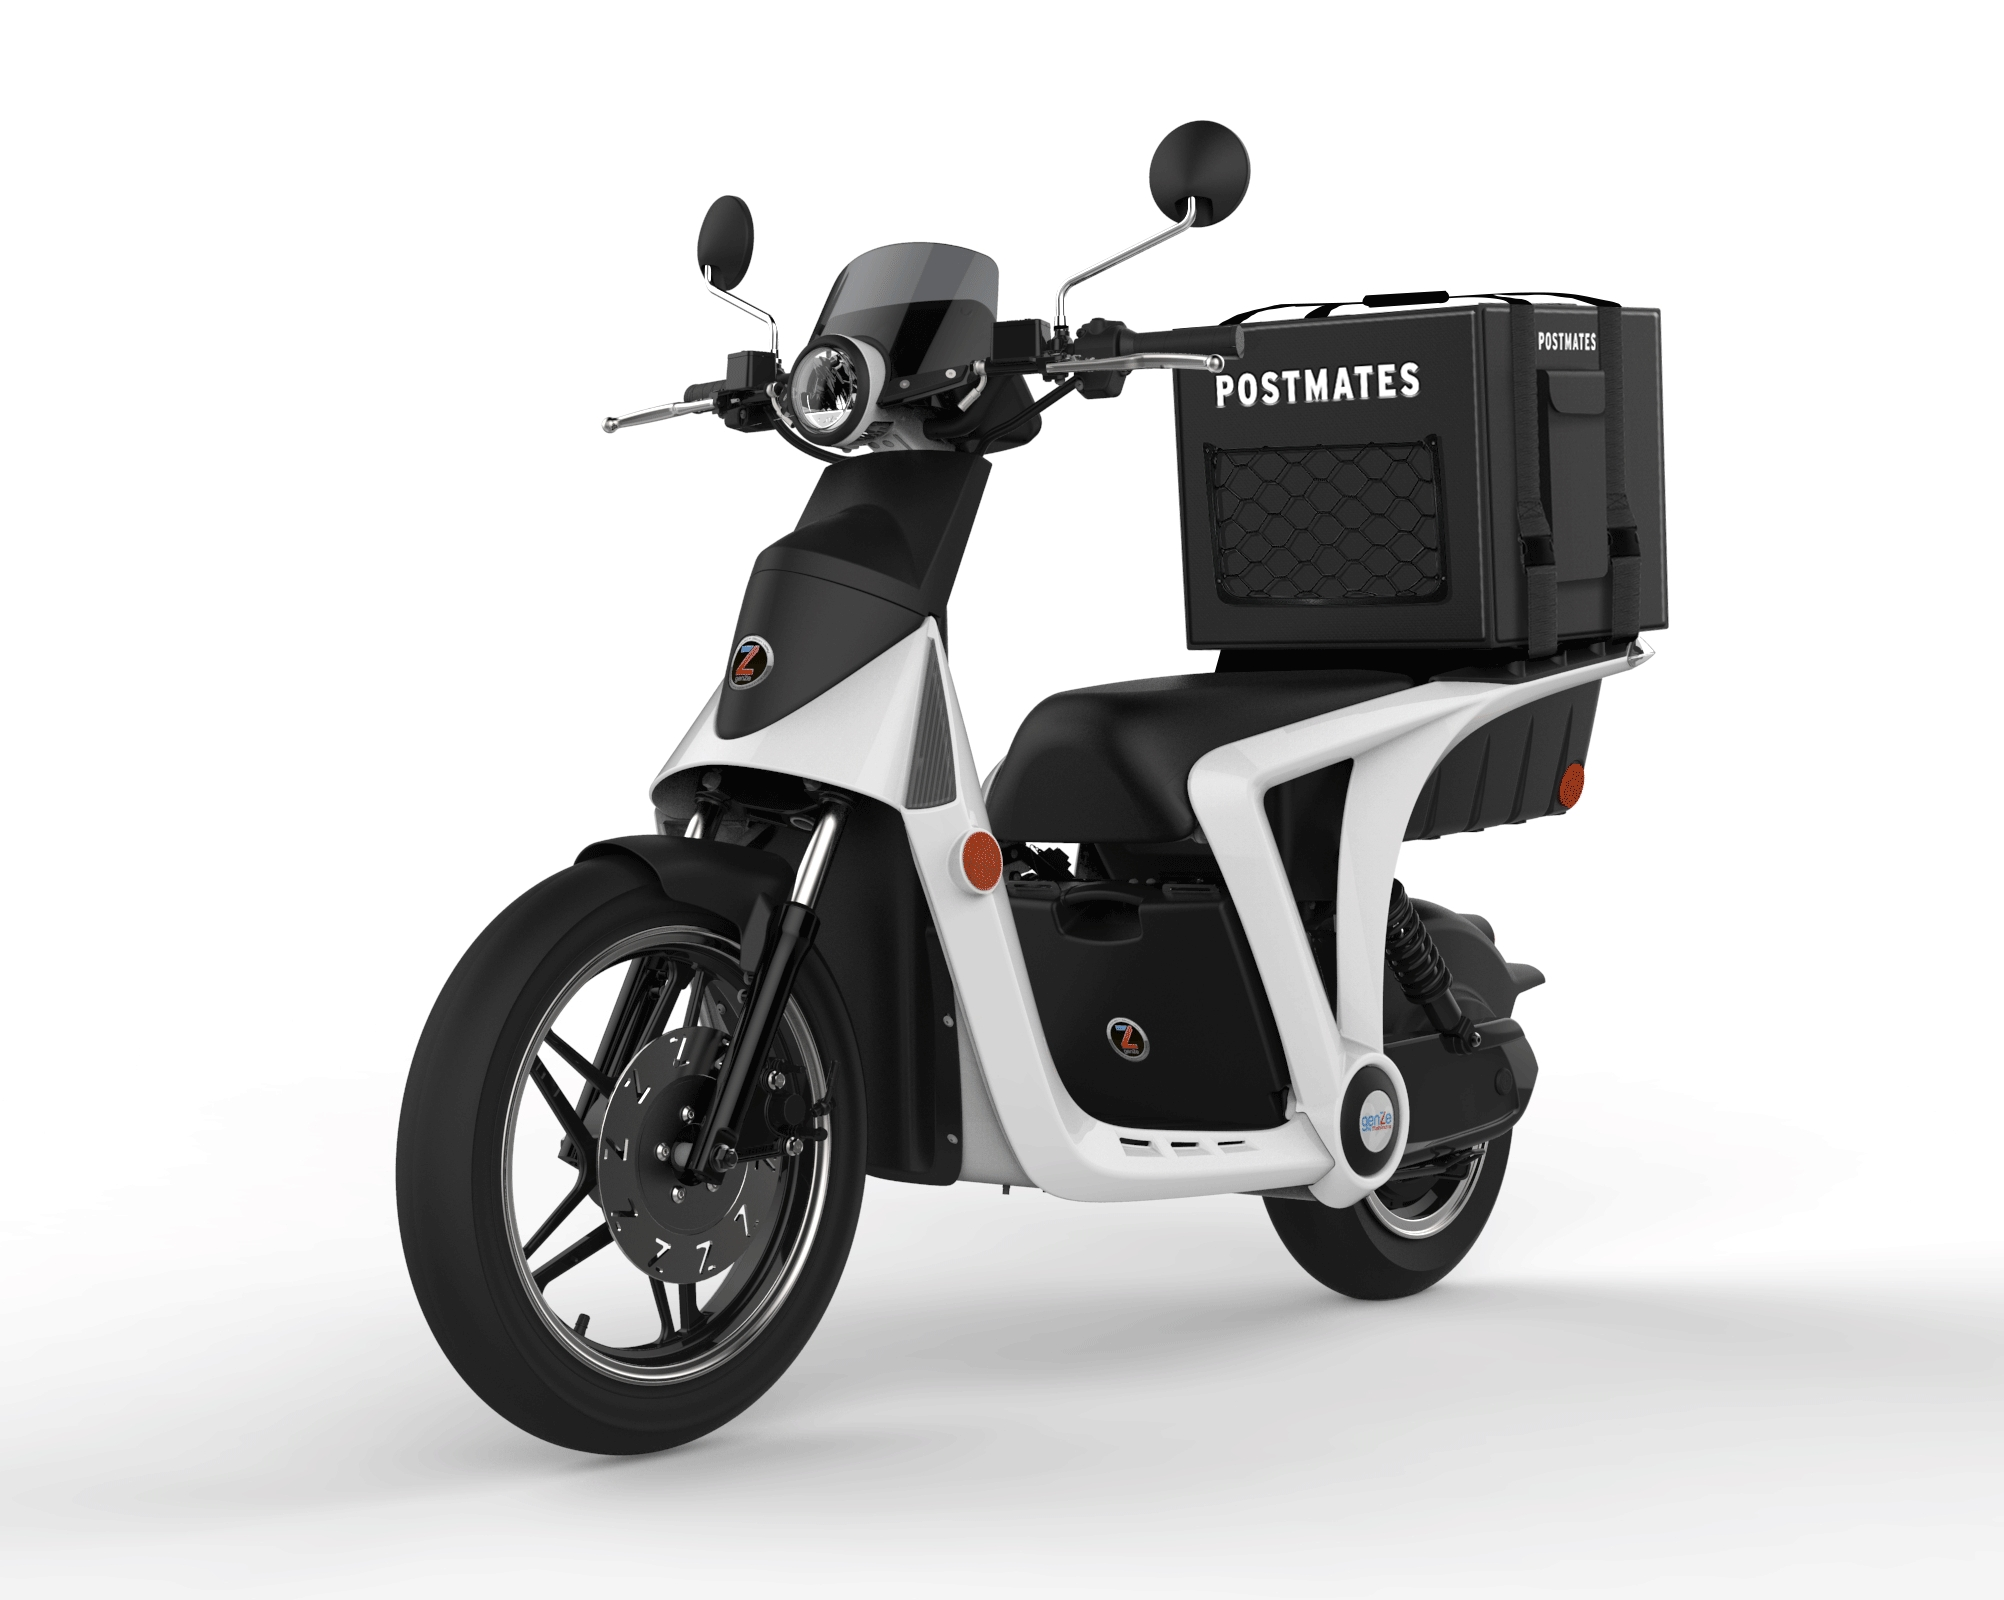 Scooter Rental San Francisco >> GenZe and Postmates Join Forces to Build Electric Vehicle Fleet | Business Wire